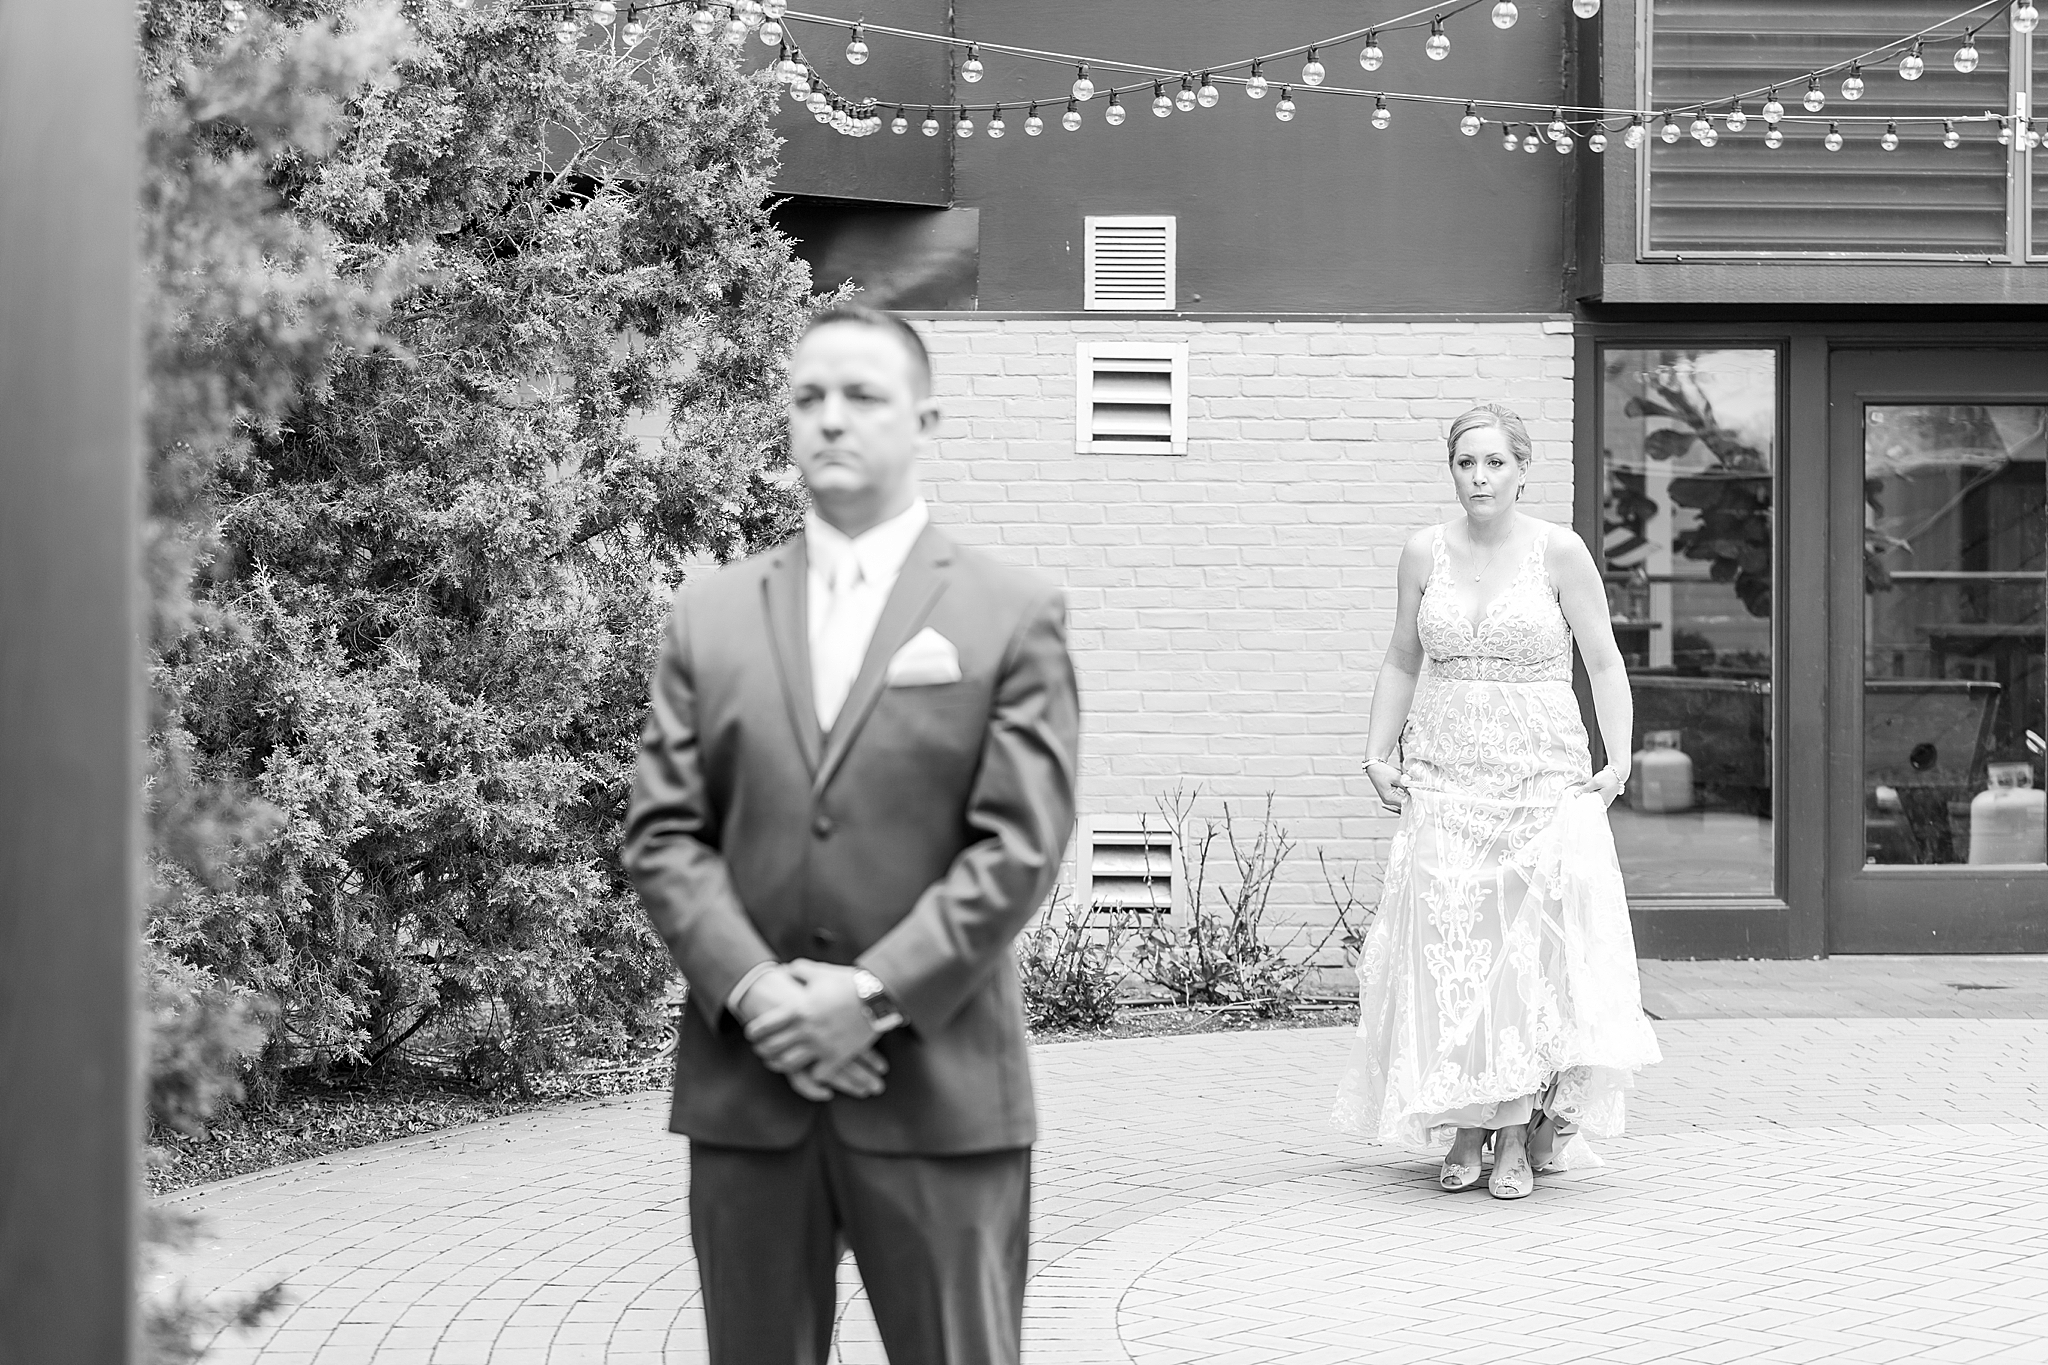 modern-romantic-wedding-photography-at-webers-in-ann-arbor-michigan-by-courtney-carolyn-photography_0018.jpg